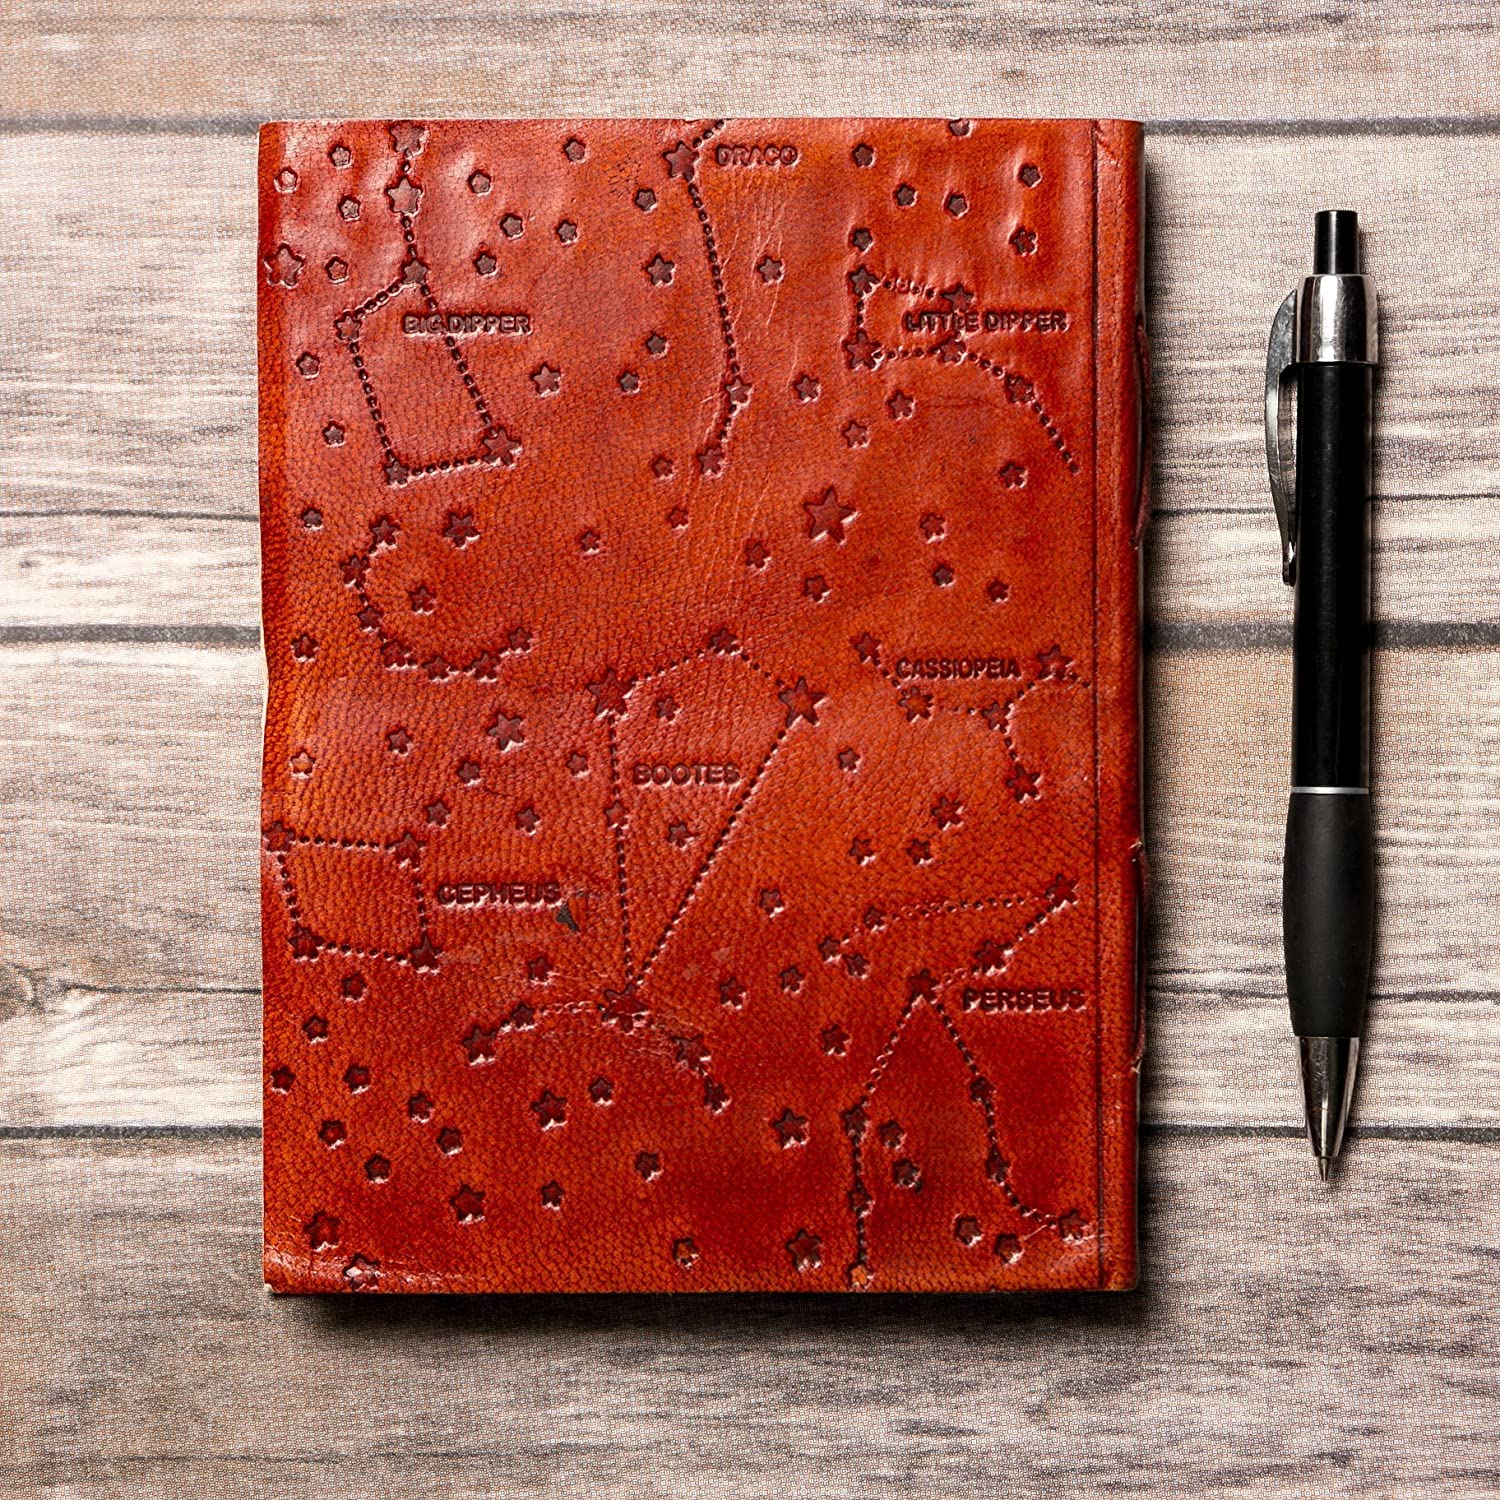 Leo Leather Journal/Zodiac Handmade Journal/Astrology Journal/Horoscope  Journal/Gifts for Him/Travel Journal/Sketchbook / Embossed Genuine Leather